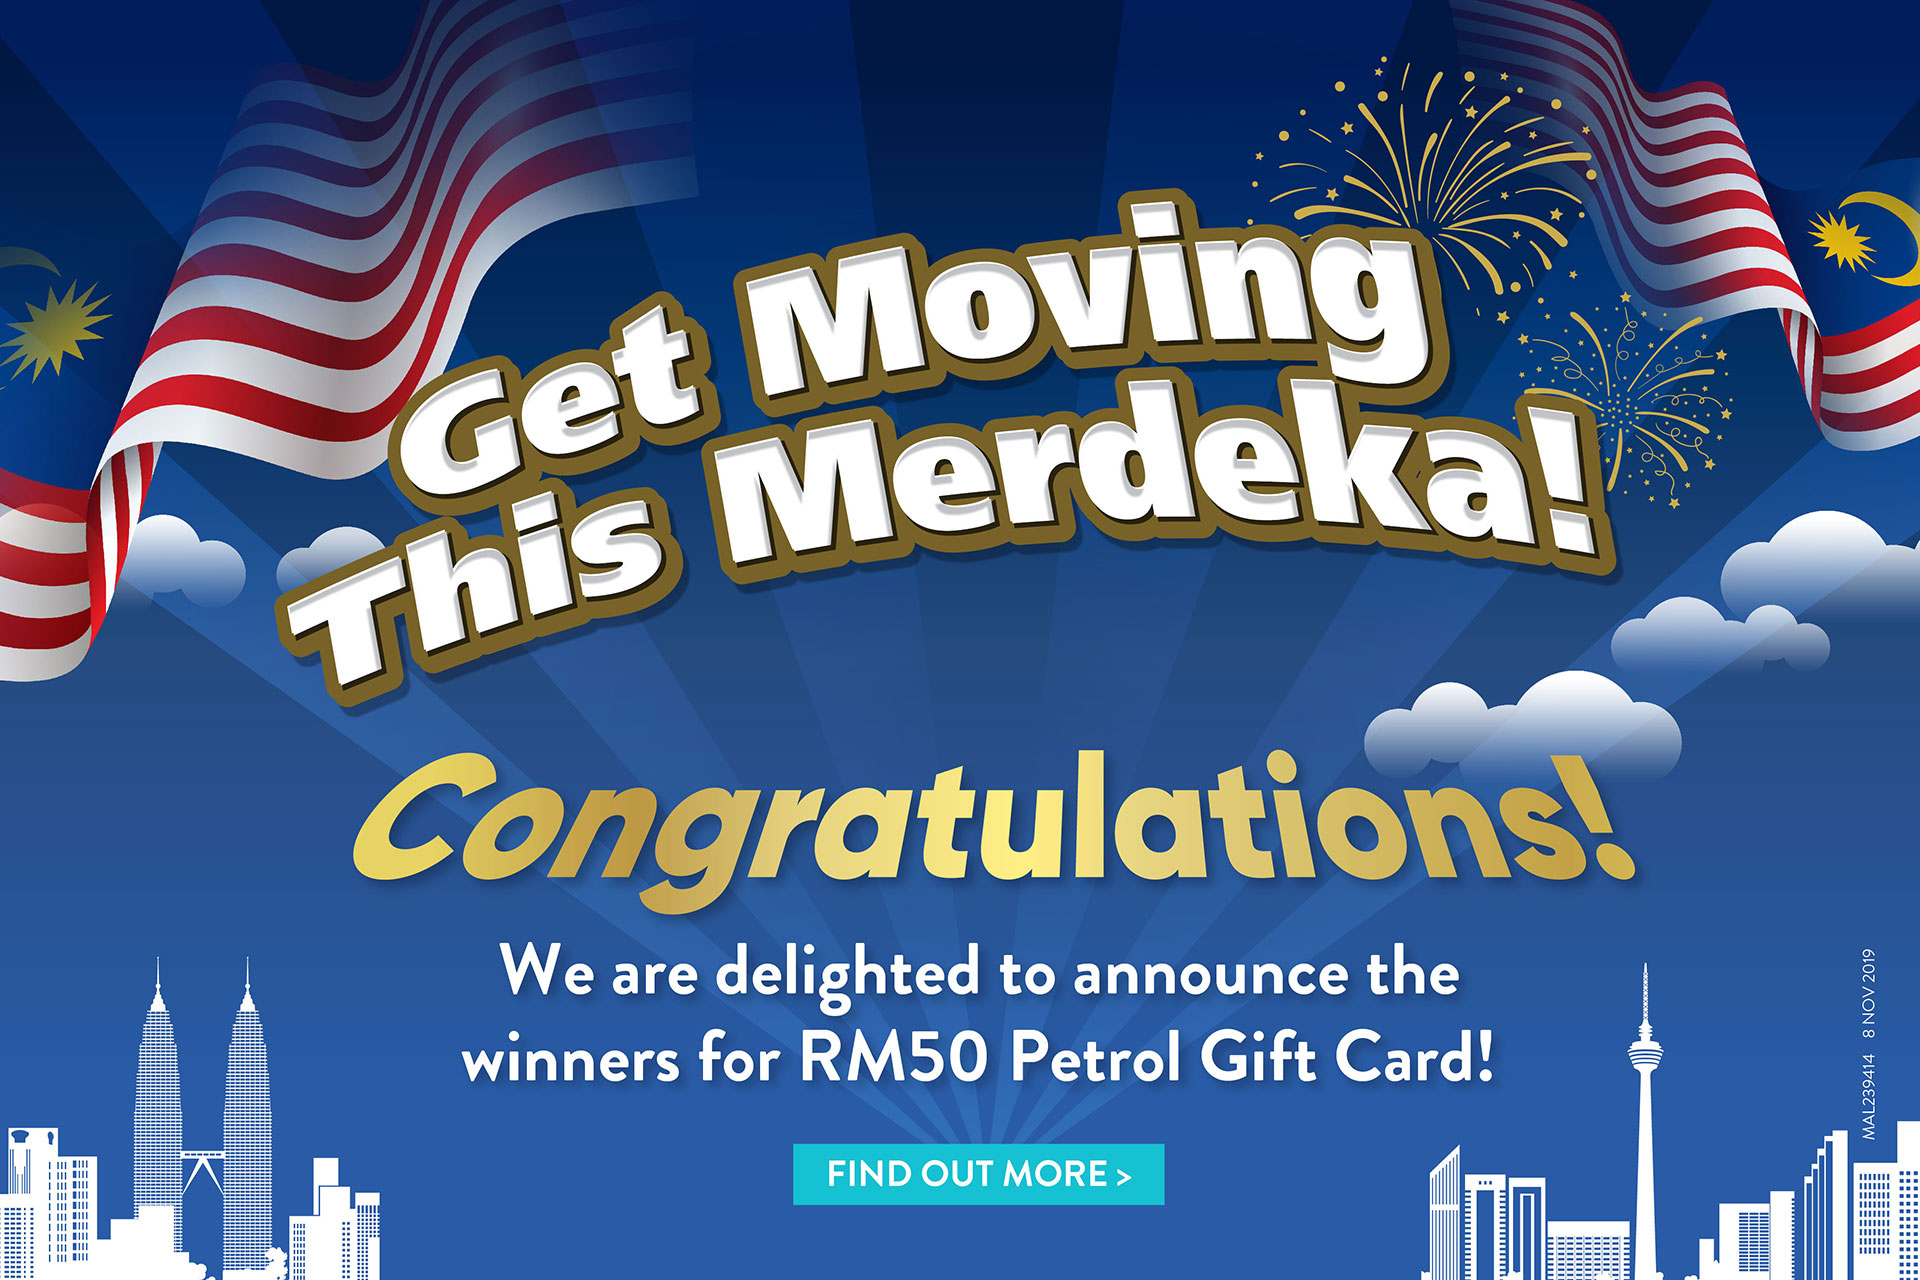 Get Moving This Merdeka - Result